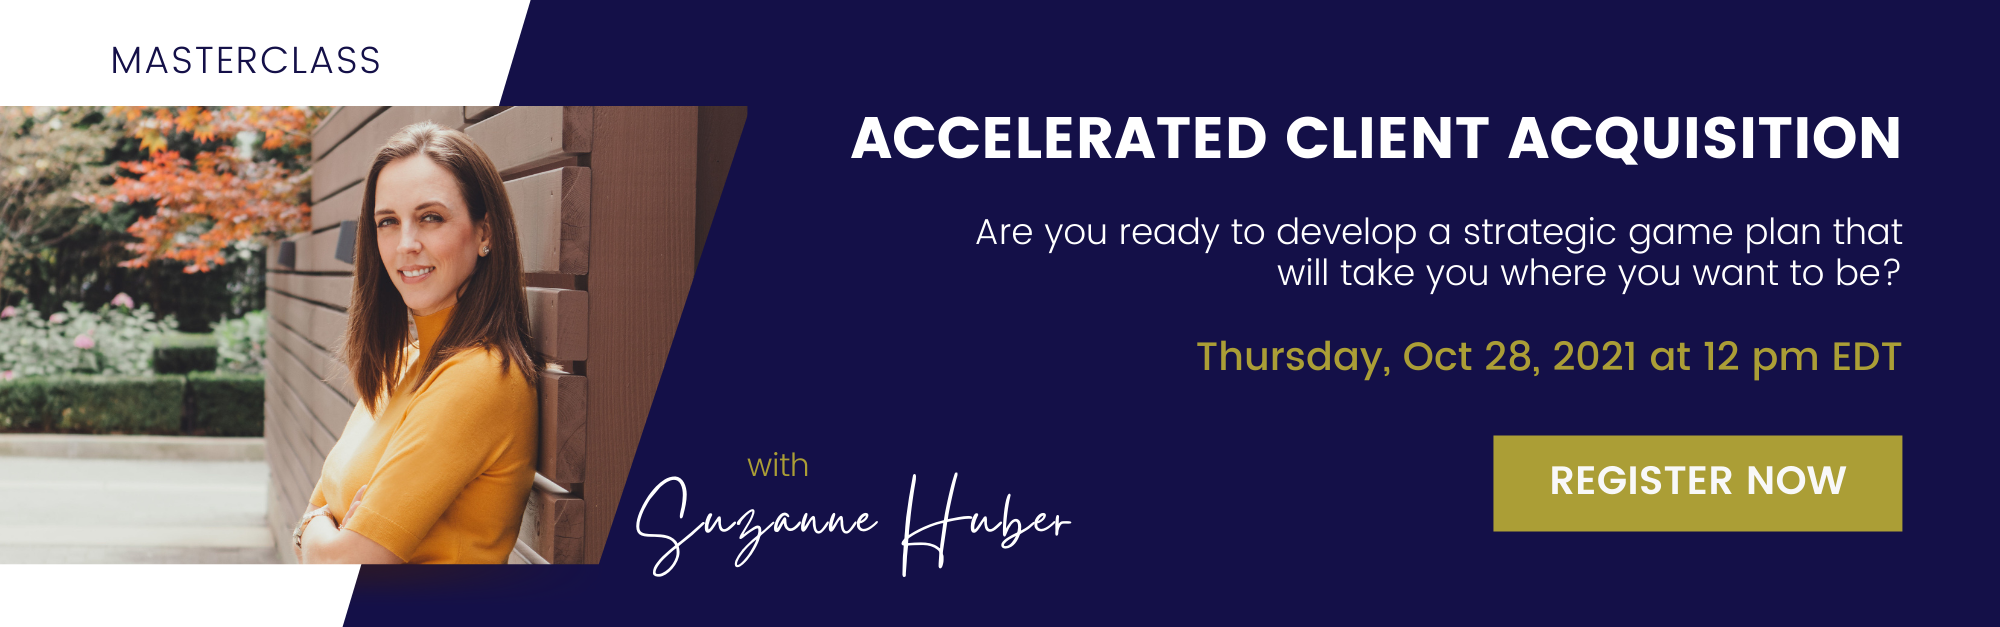 masterclass accelerated client acquisition